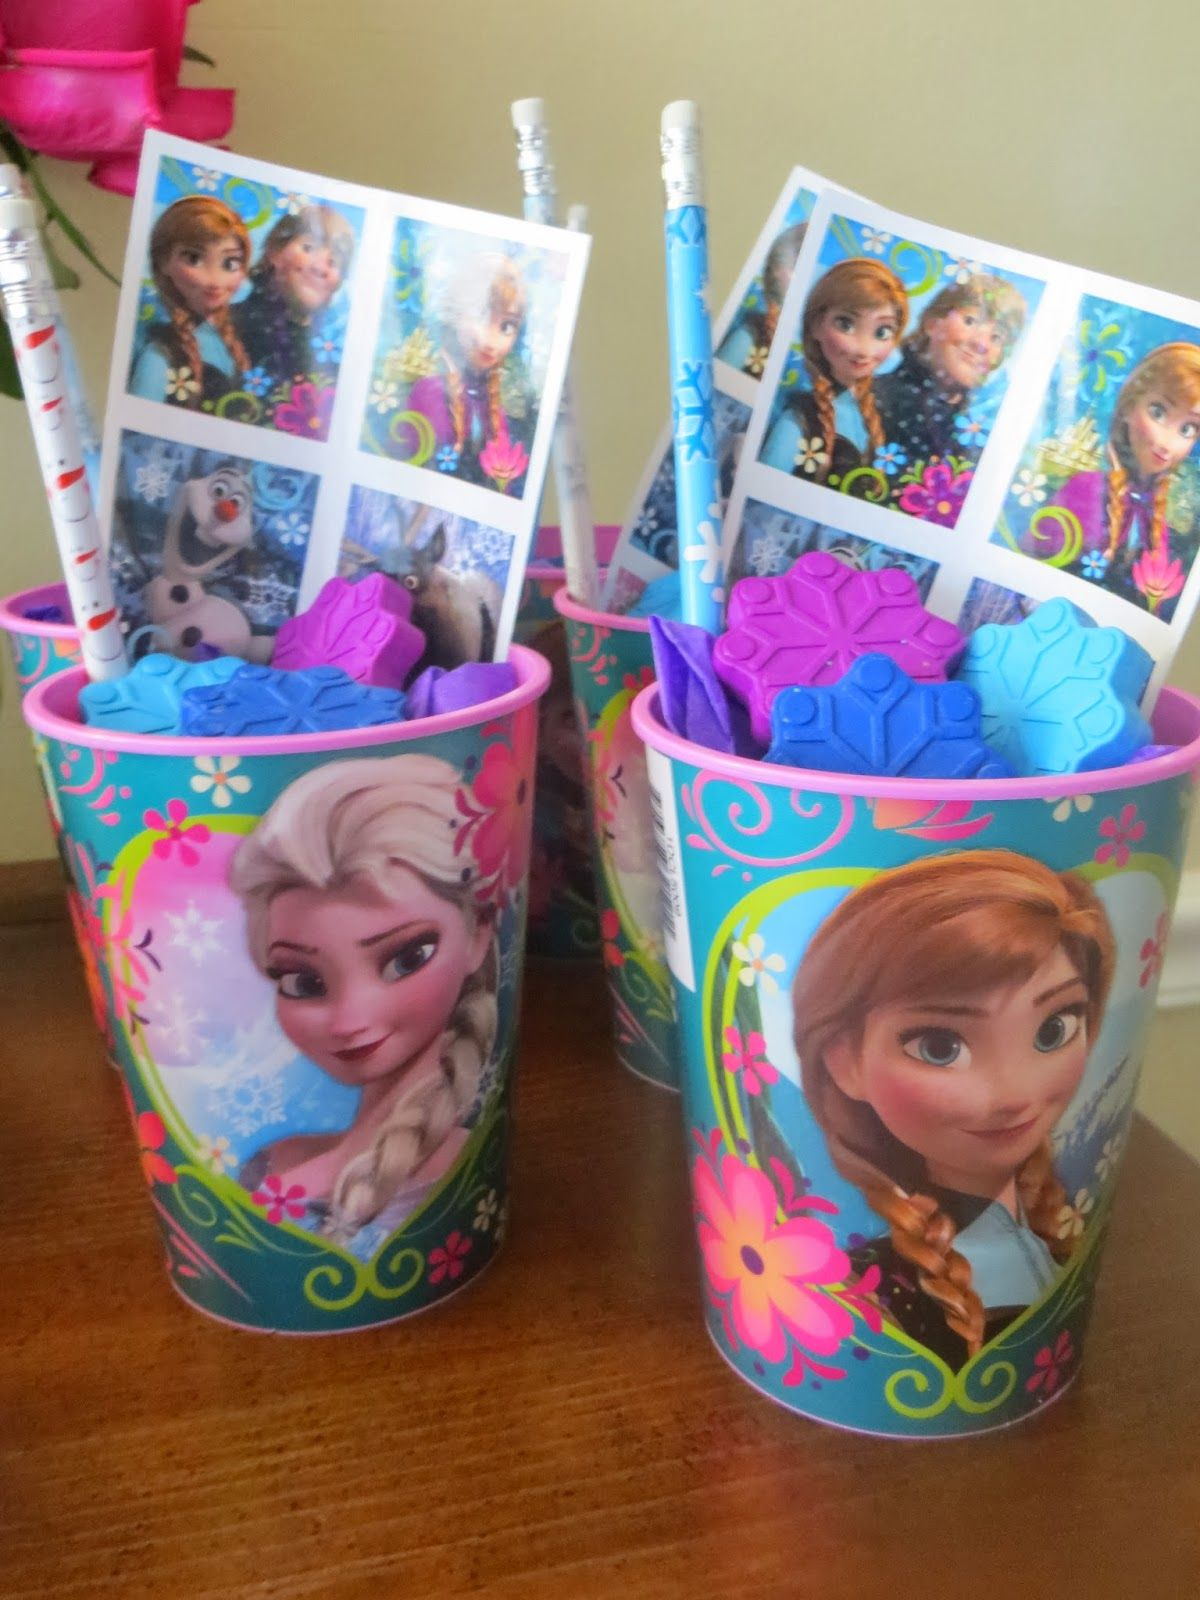 Disney S Frozen Themed Birthday Party Great Movie Night Ideas